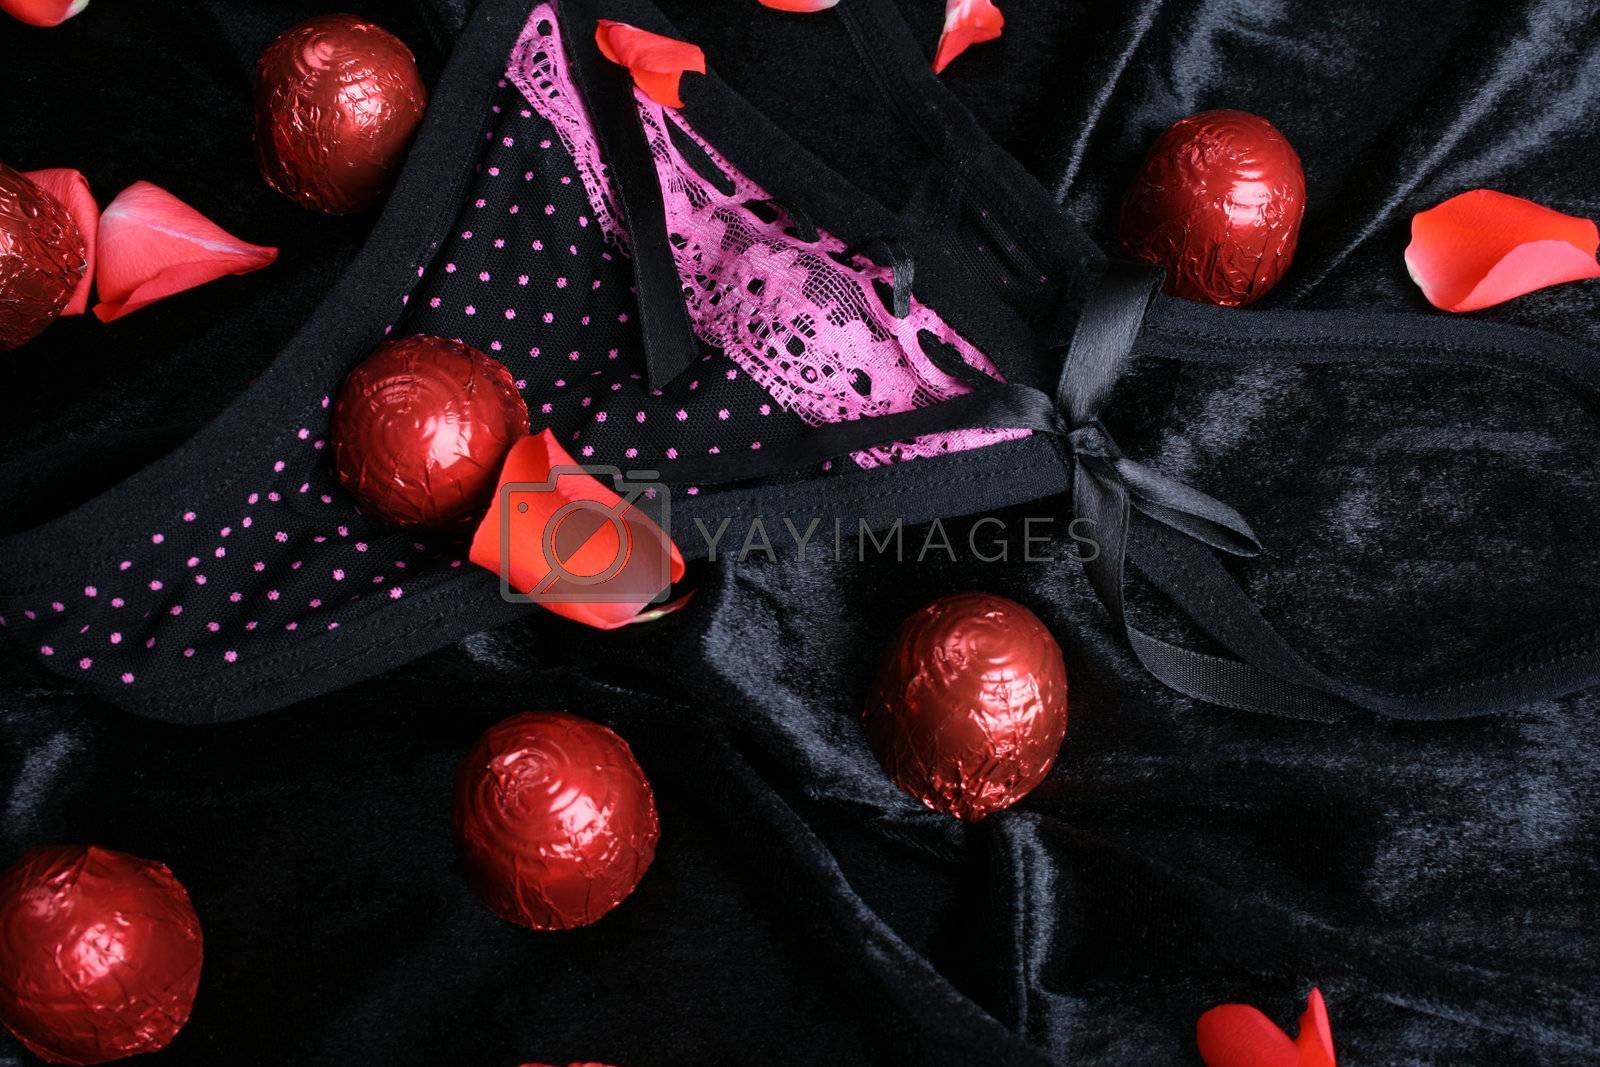 Lace polkadot underwear and chocolates with rose petals